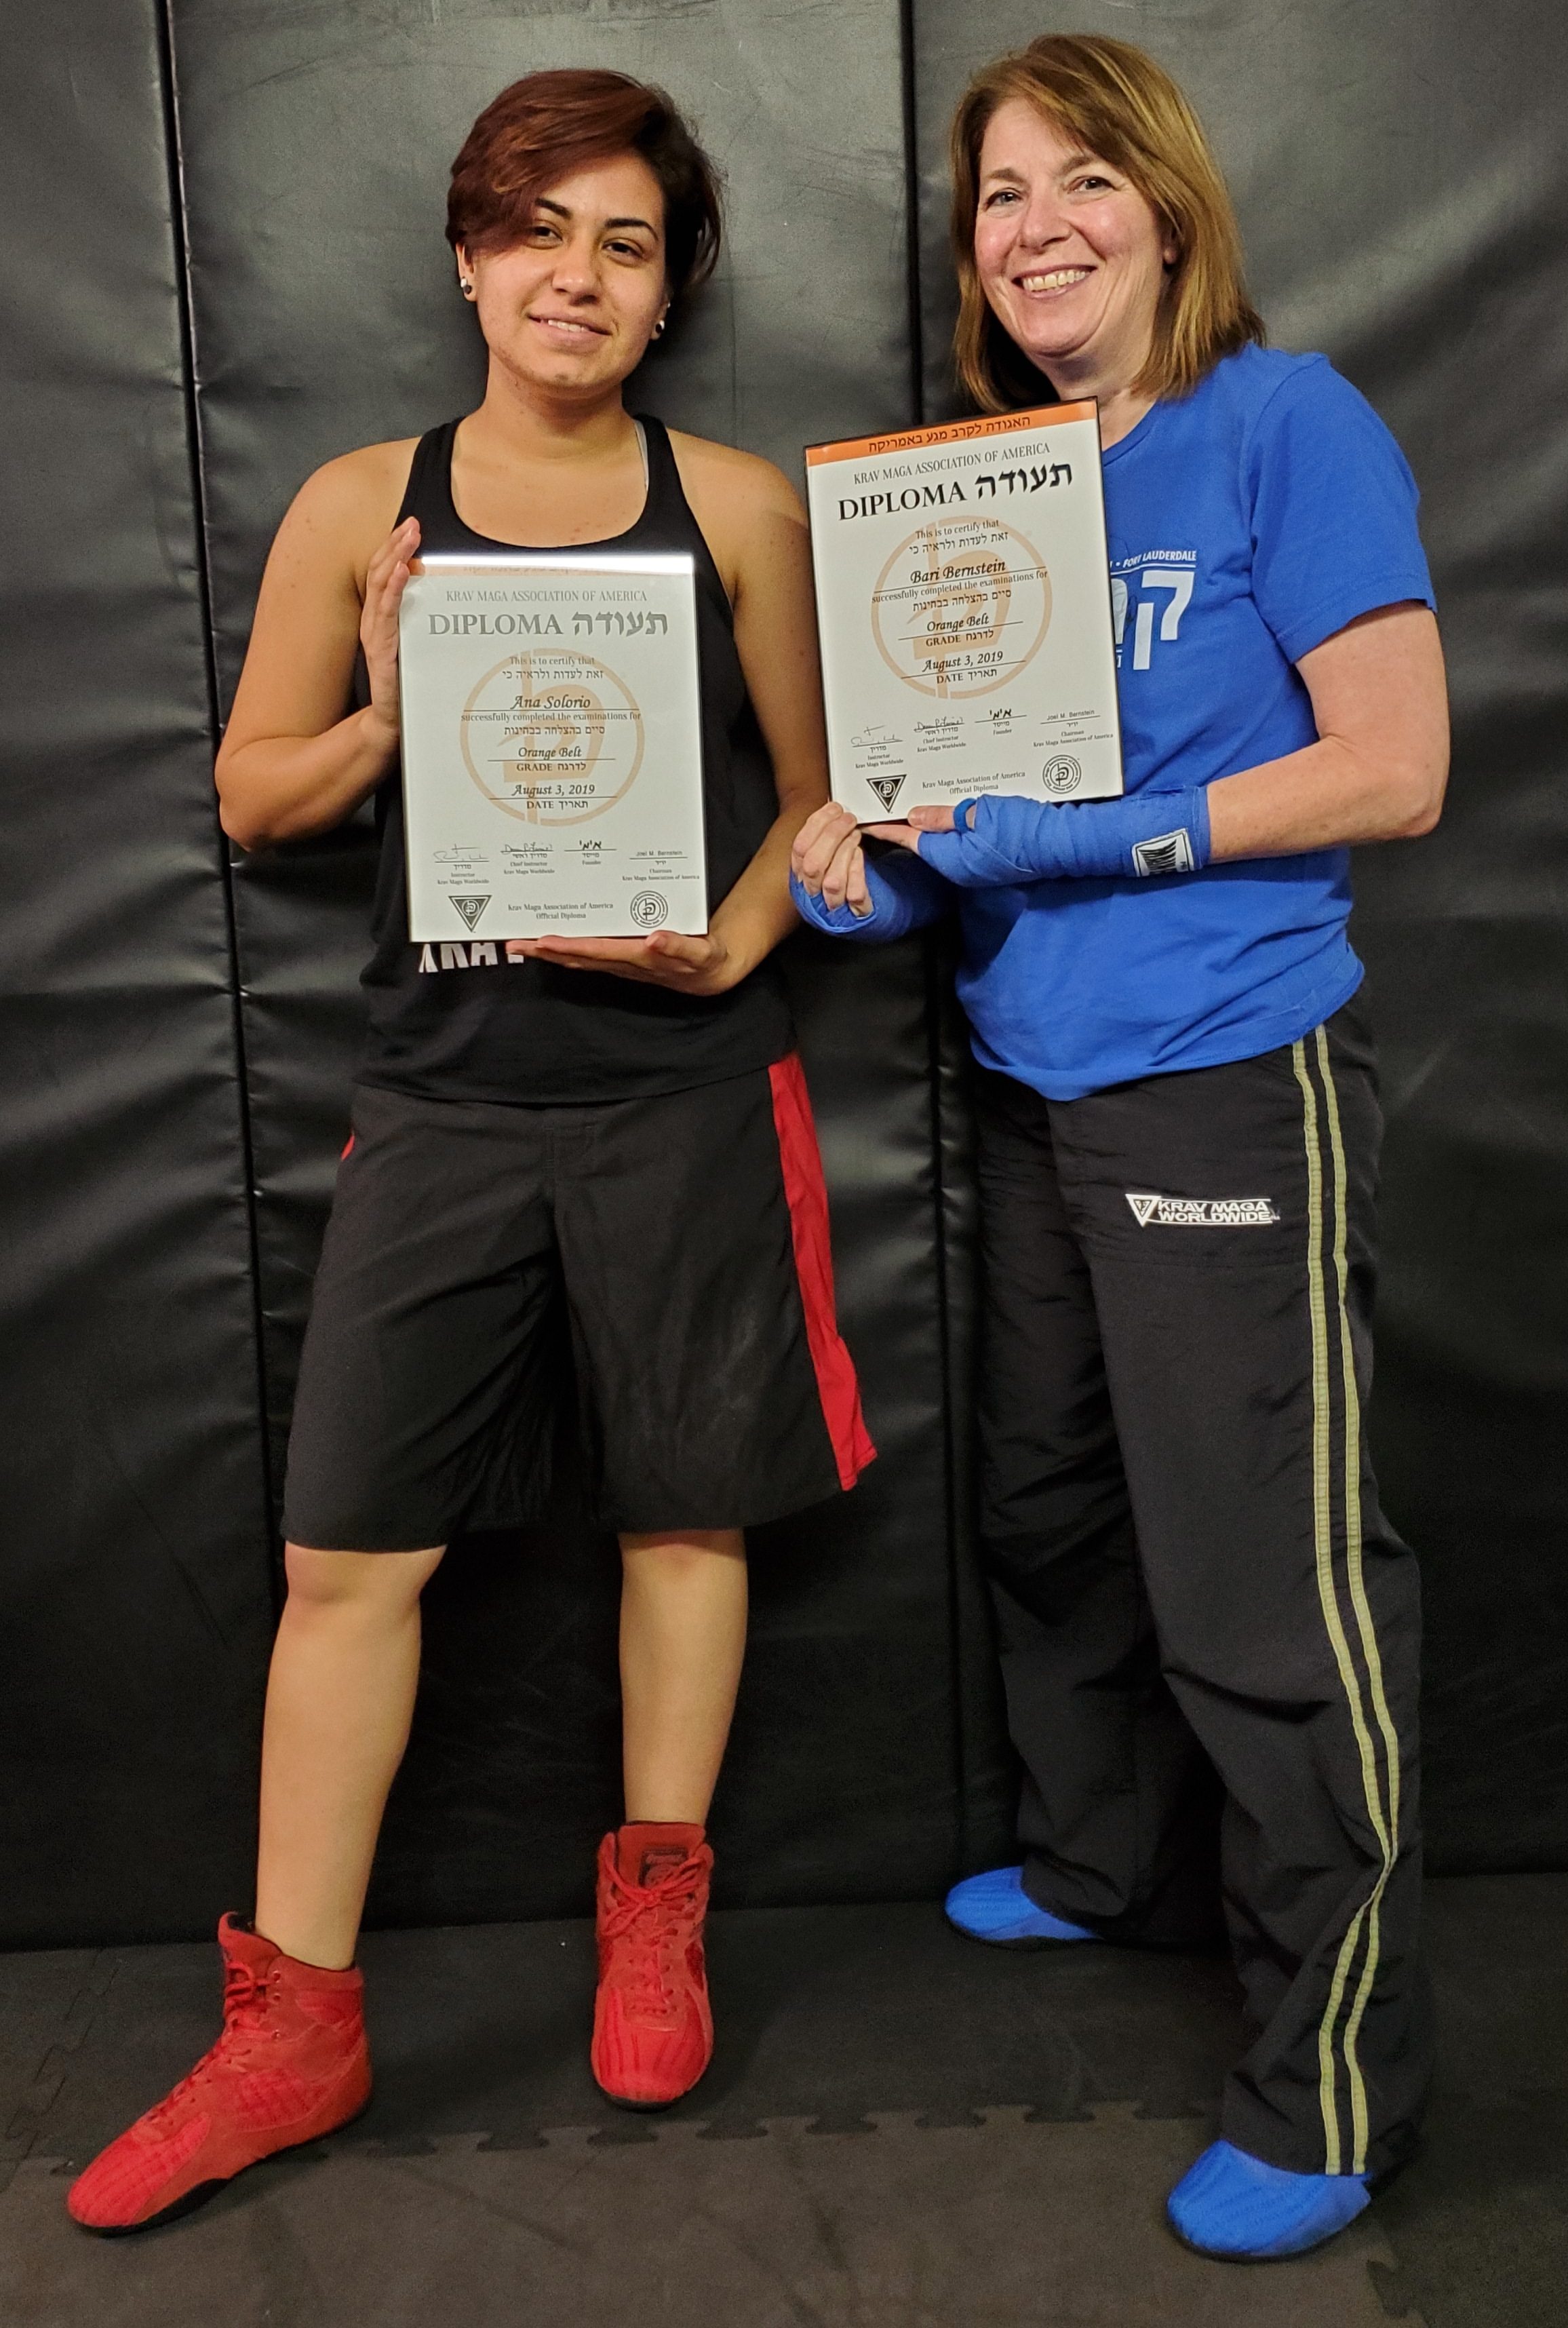 Ana Solorio and Bari Bernstein awarded their Krav Maga orange belt diplomas.